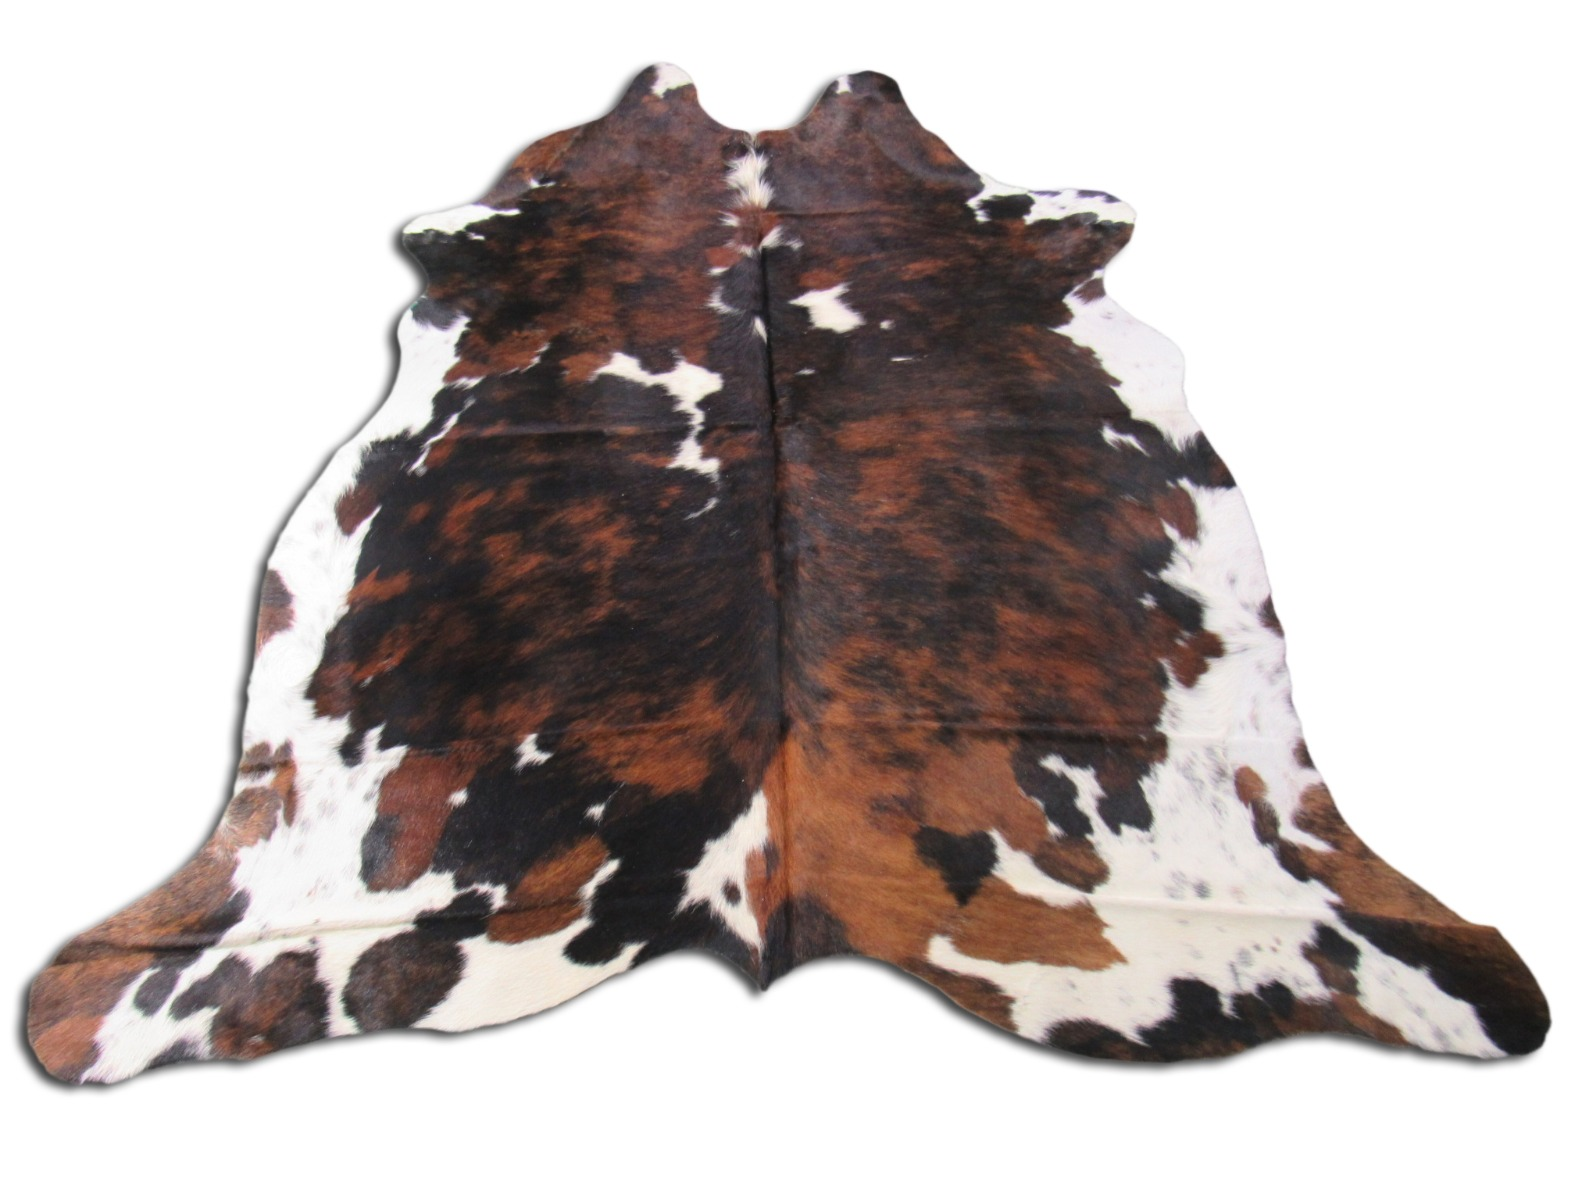 A-1344 Tricolor Speckled Cowhide Rug Size: 7' X 6 1/2'